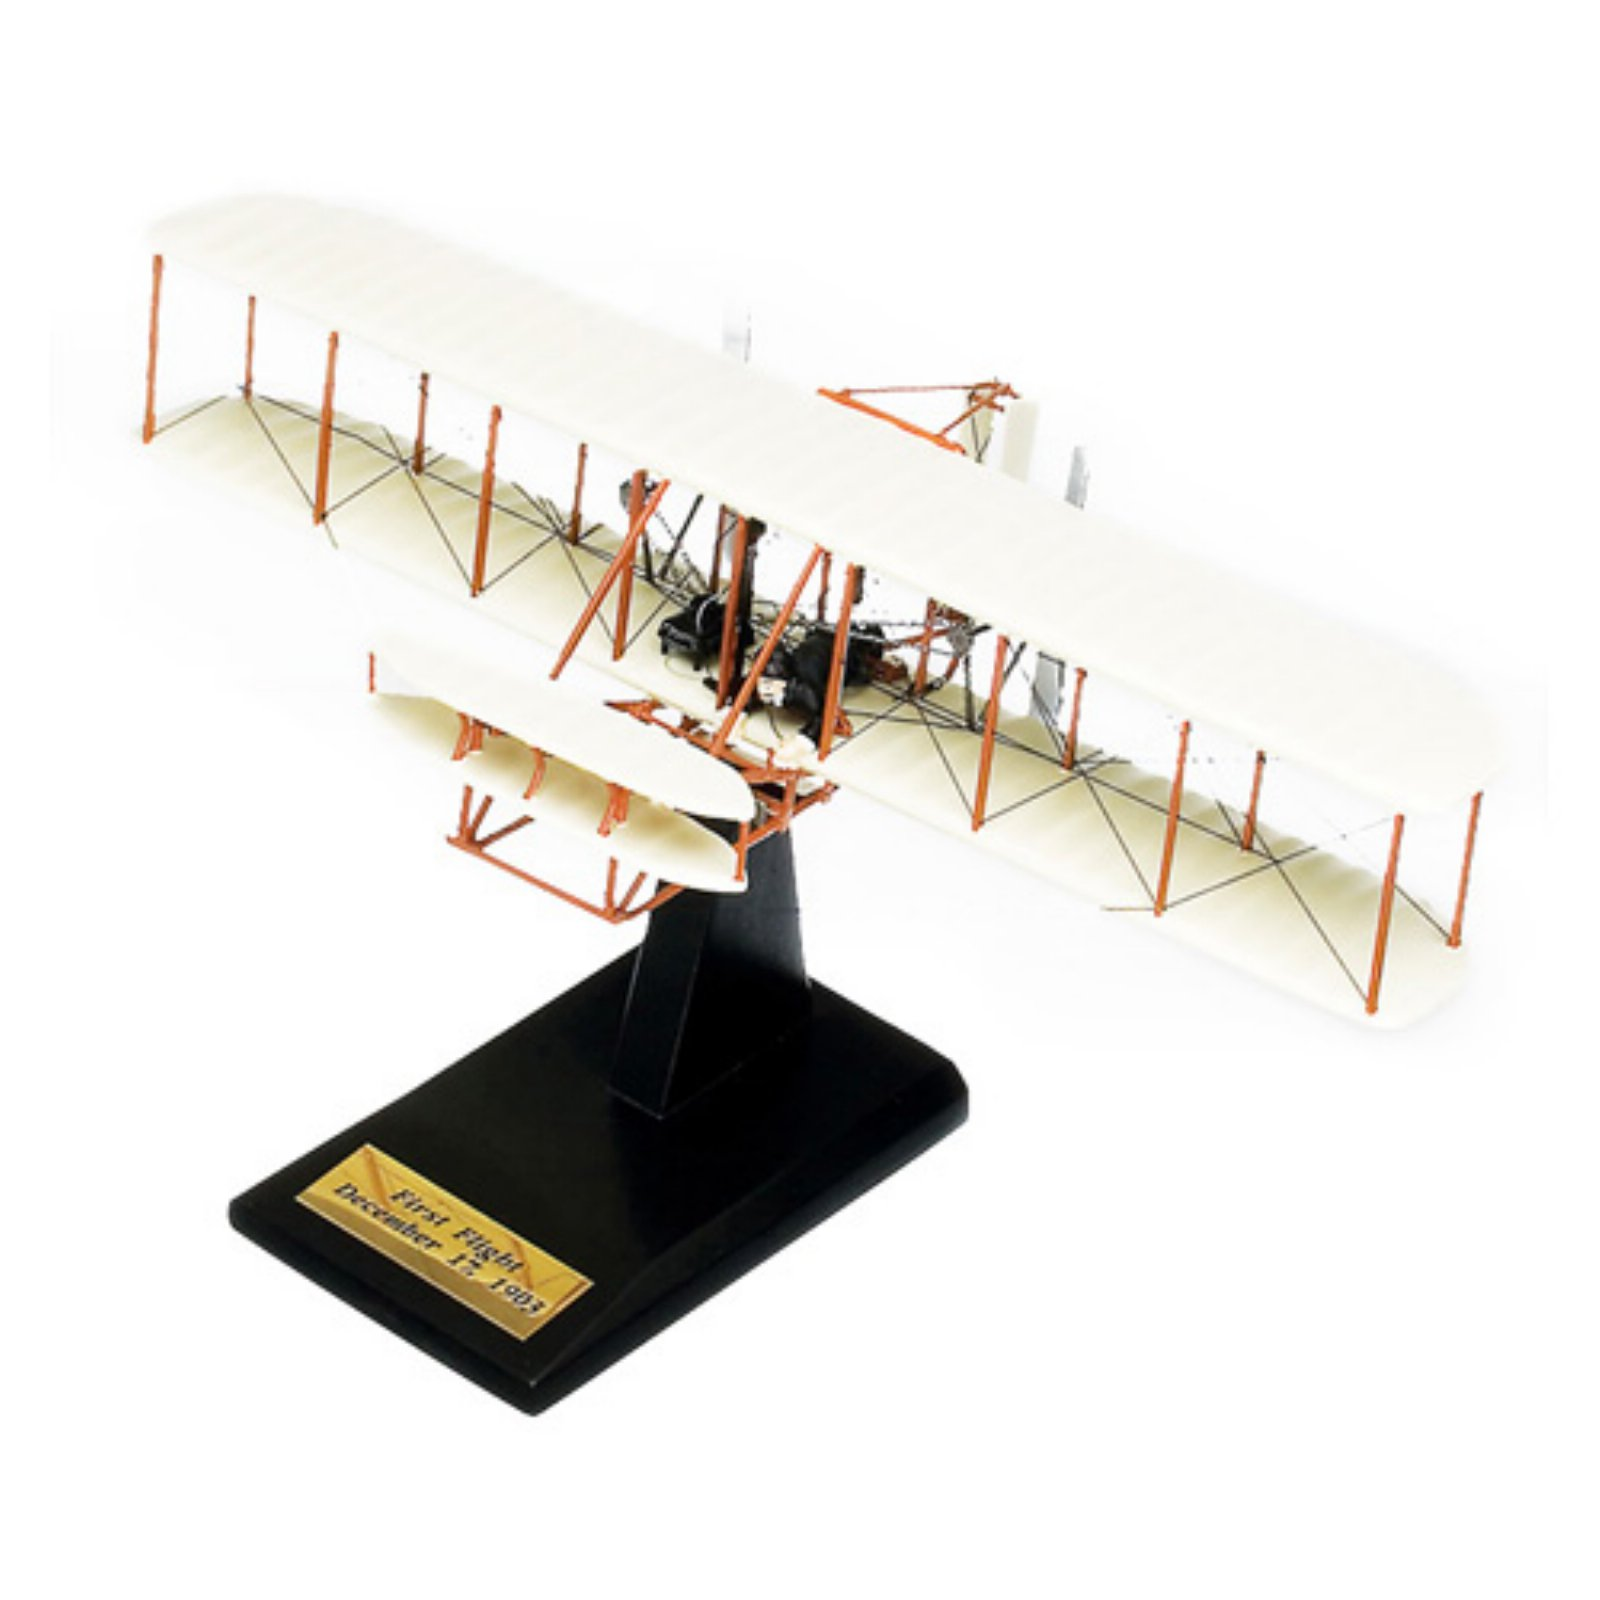 MasterCraft Wright Flyer Kitty Hawk Model Plane